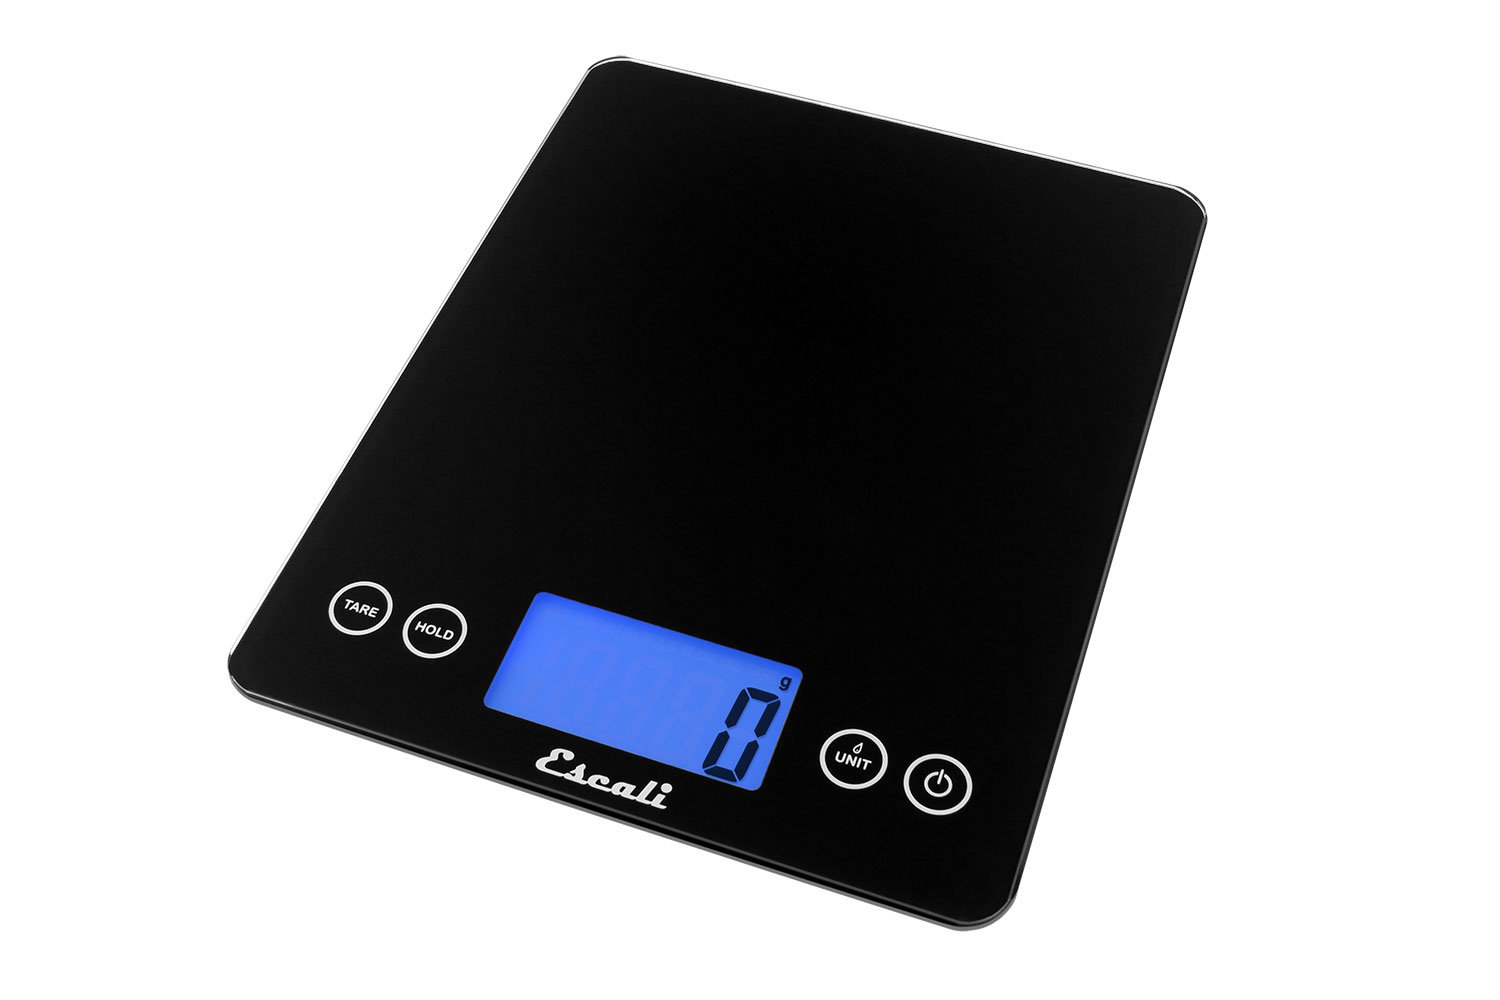 Escali ArtiXL 2210IB Precision Extra-Large Glass Surface Kitchen Scale, Measures Liquid and Dry Ingredients, Tare Function, Digital LCD Display,  22lb Capacity, Black by Escali